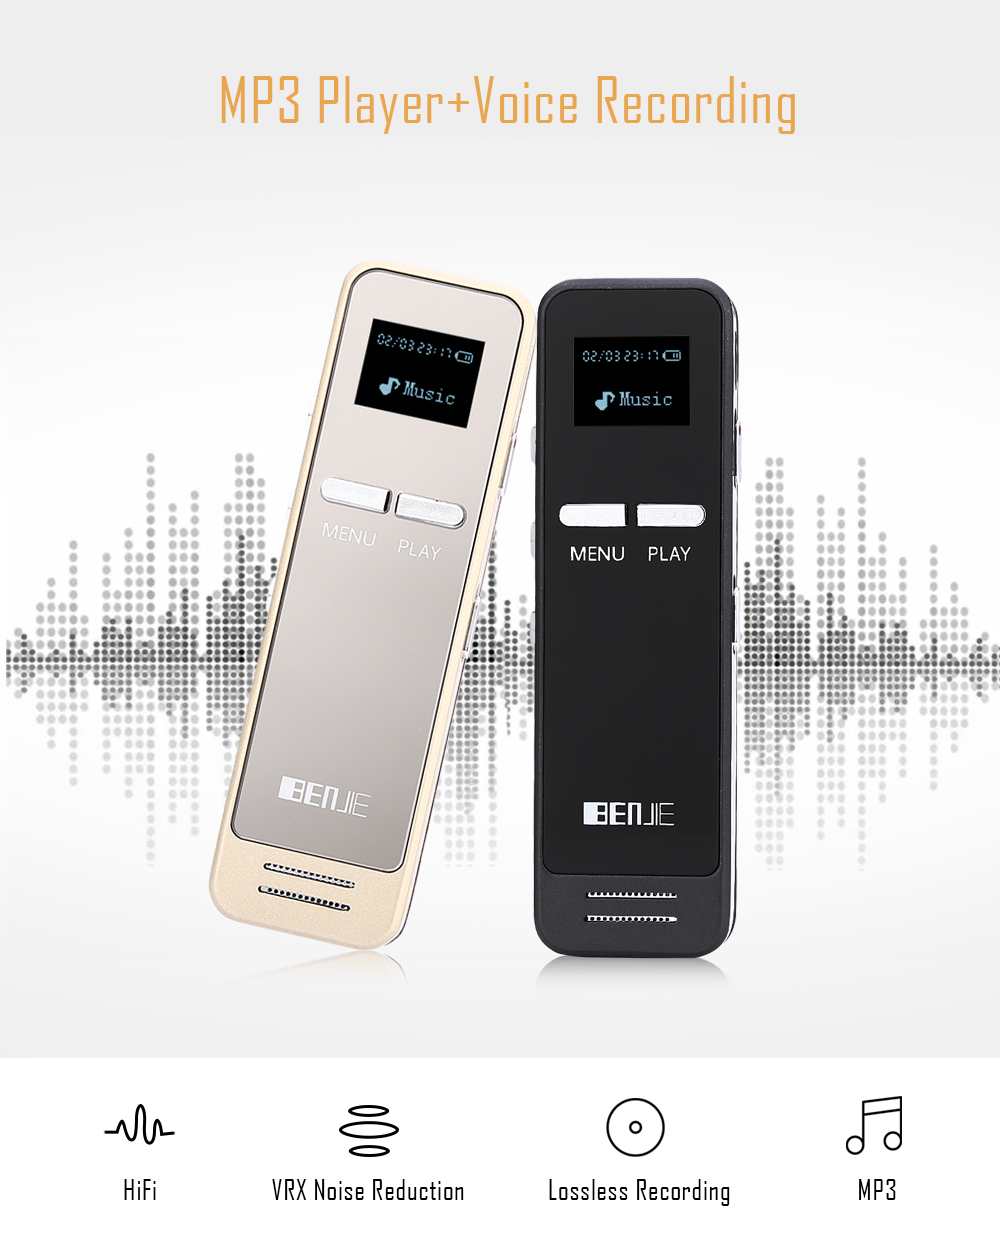 BENJIE S - ONE 8G Internal 0.96 inch External Speaker MP3 Player Voice Recorder